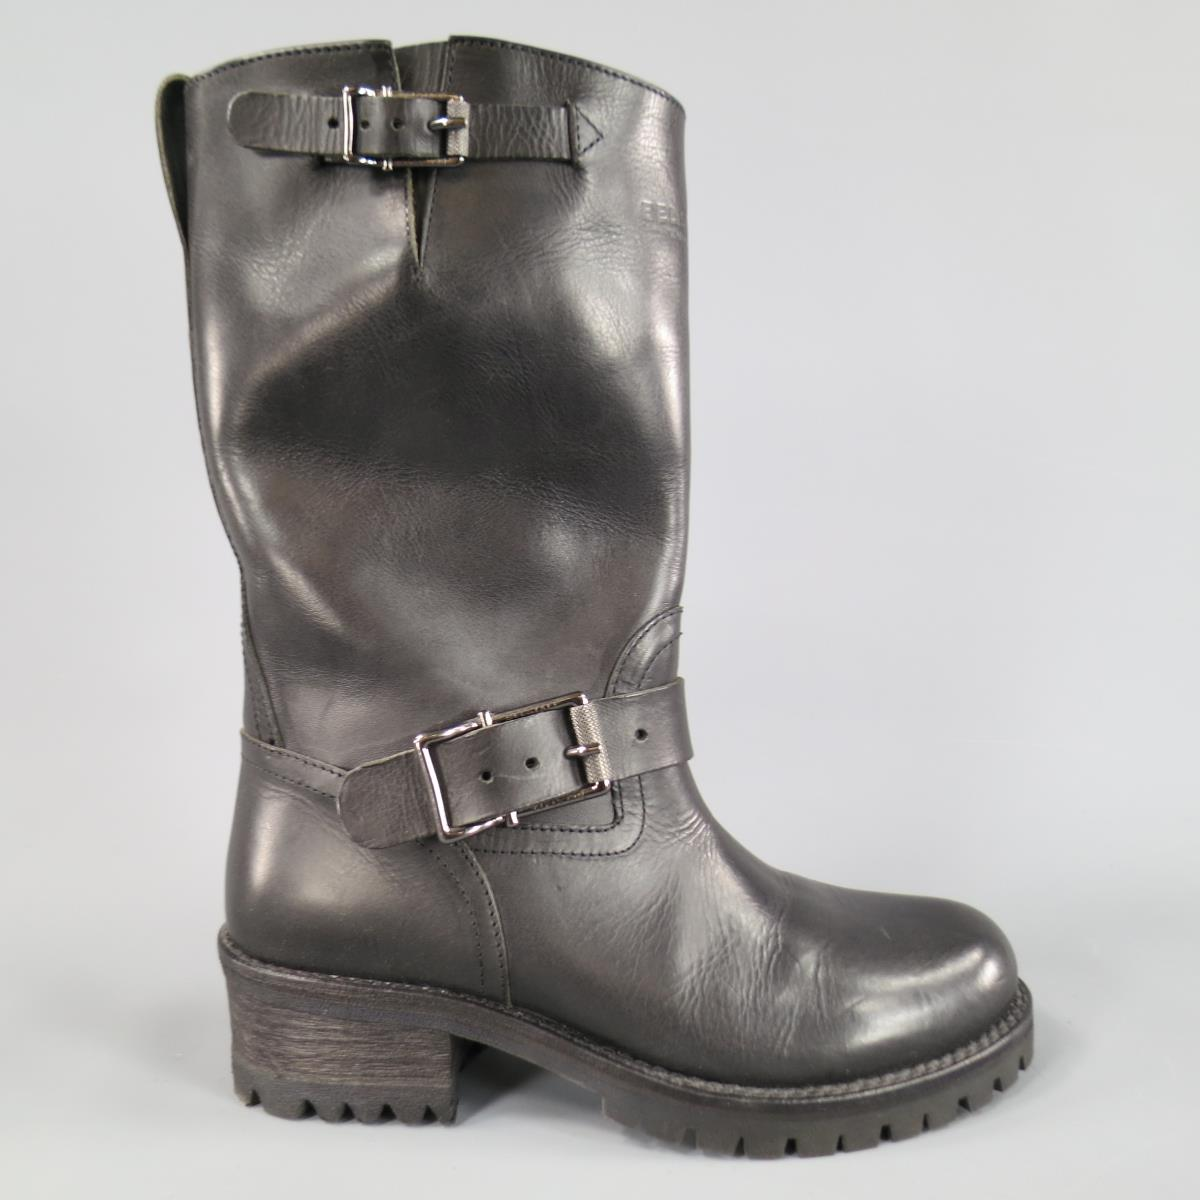 sneakers new lower prices wholesale price Details about BELSTAFF Size 7 Black Leather FULHAM MOTO Biker Boots